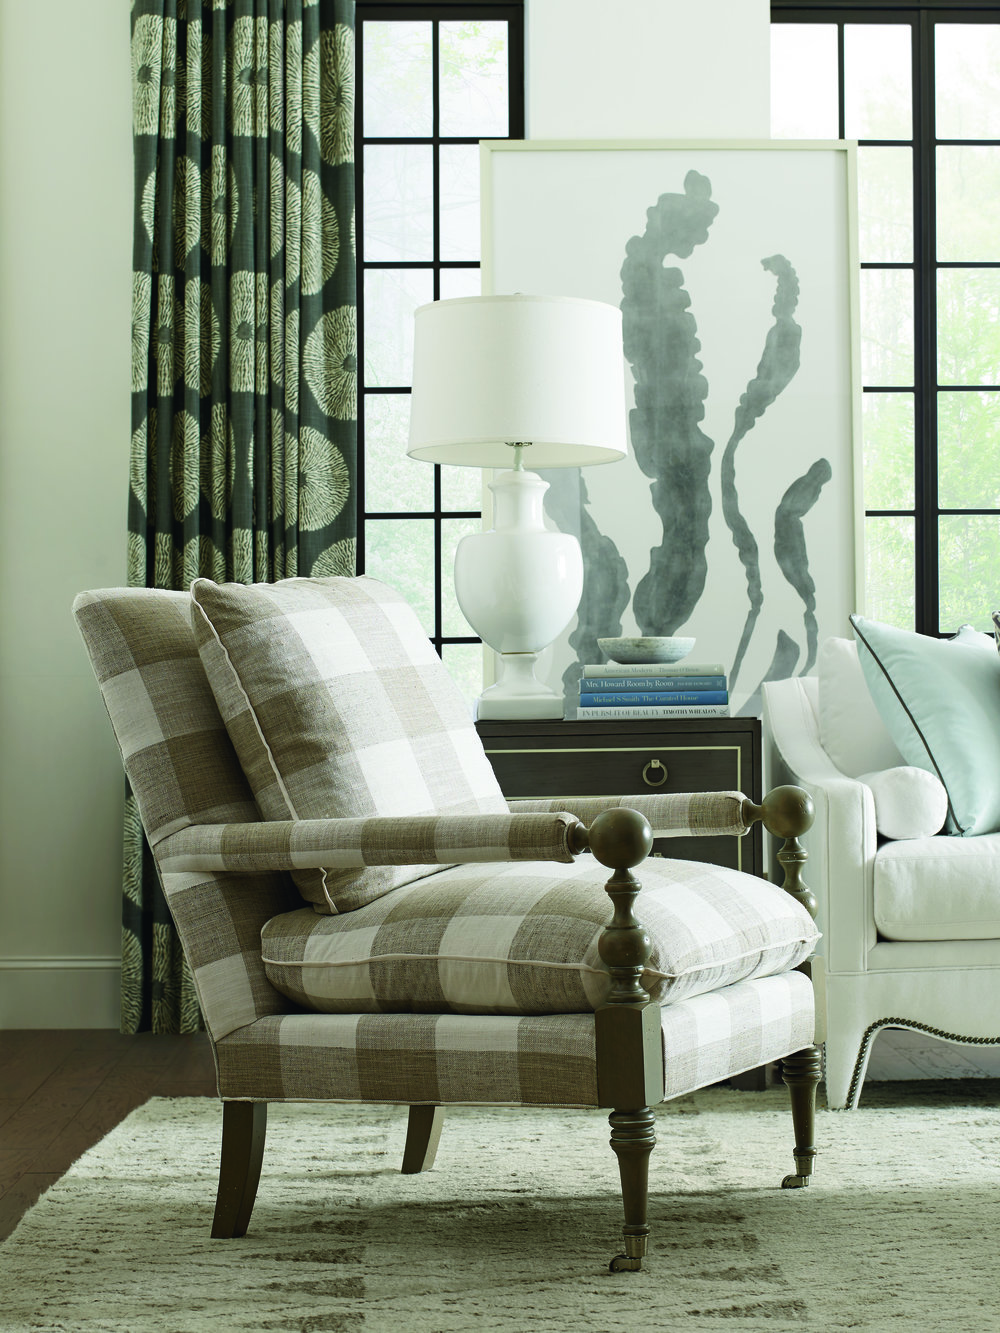 Traditionally Derby Is A Must Visit Destination For Fine Furniture,  Fabrics, And Design. Derby Owner, Eileen Bocci, Has Assembled One Of The  Most Inspiring ...